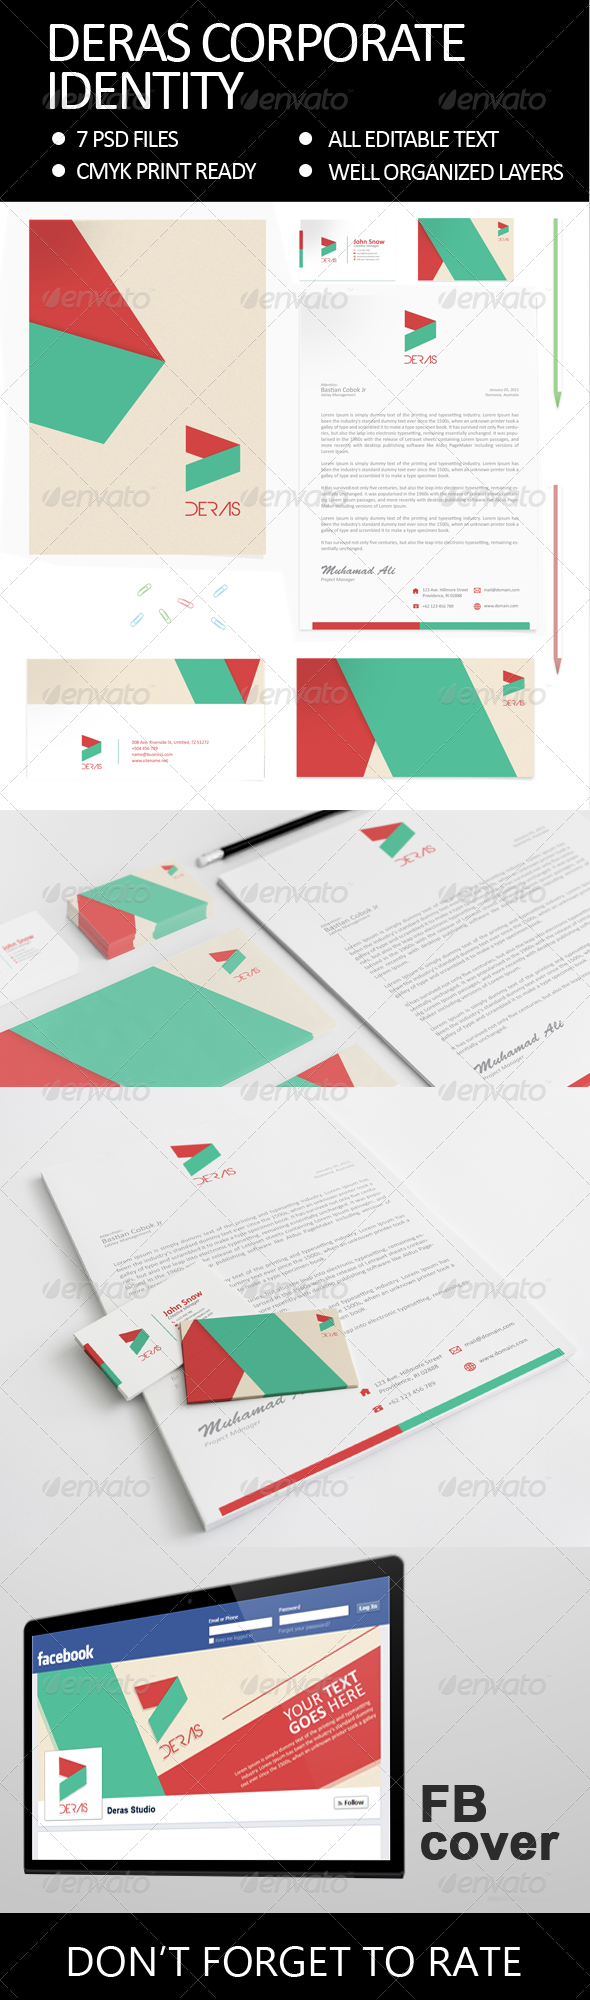 GraphicRiver Deras Corporate Identity 6254432